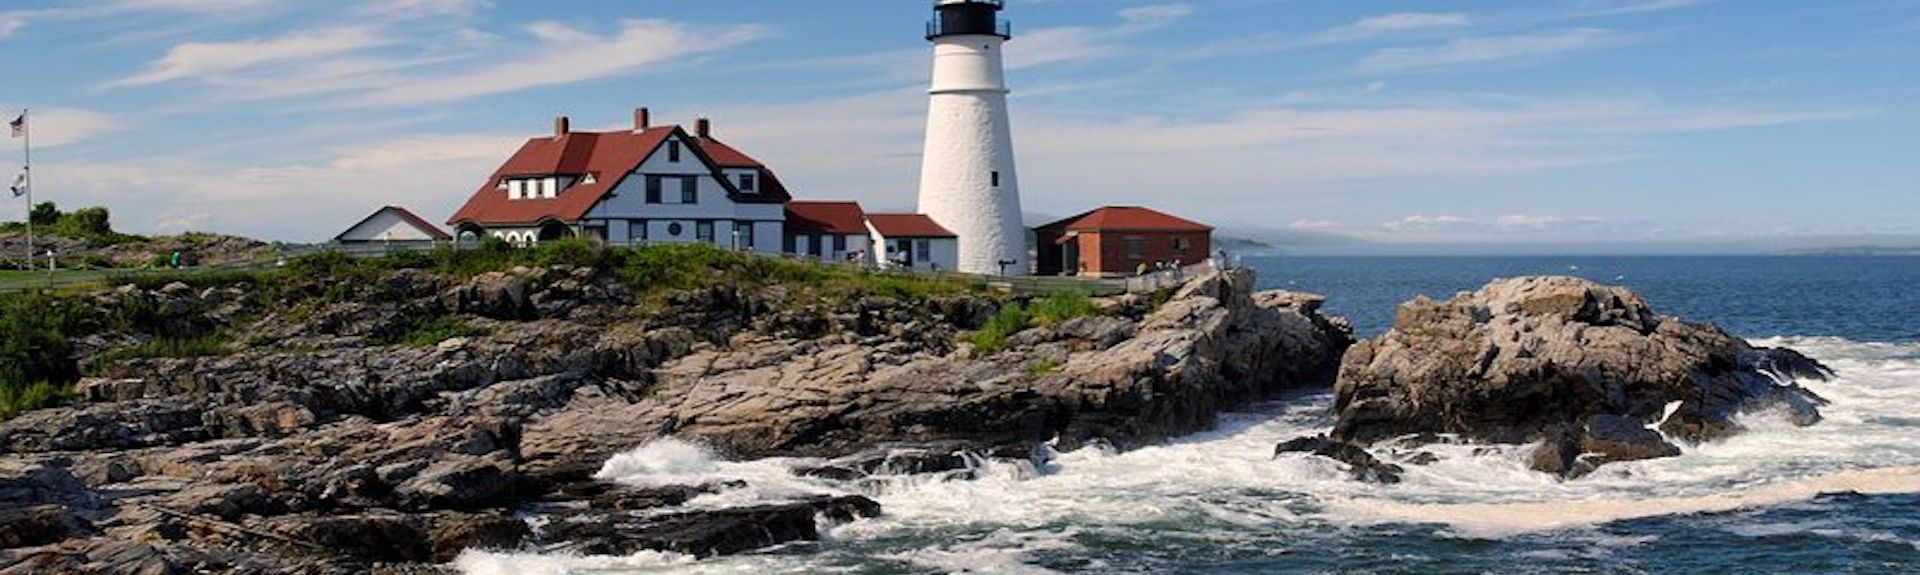 South Coast, Maine, United States of America